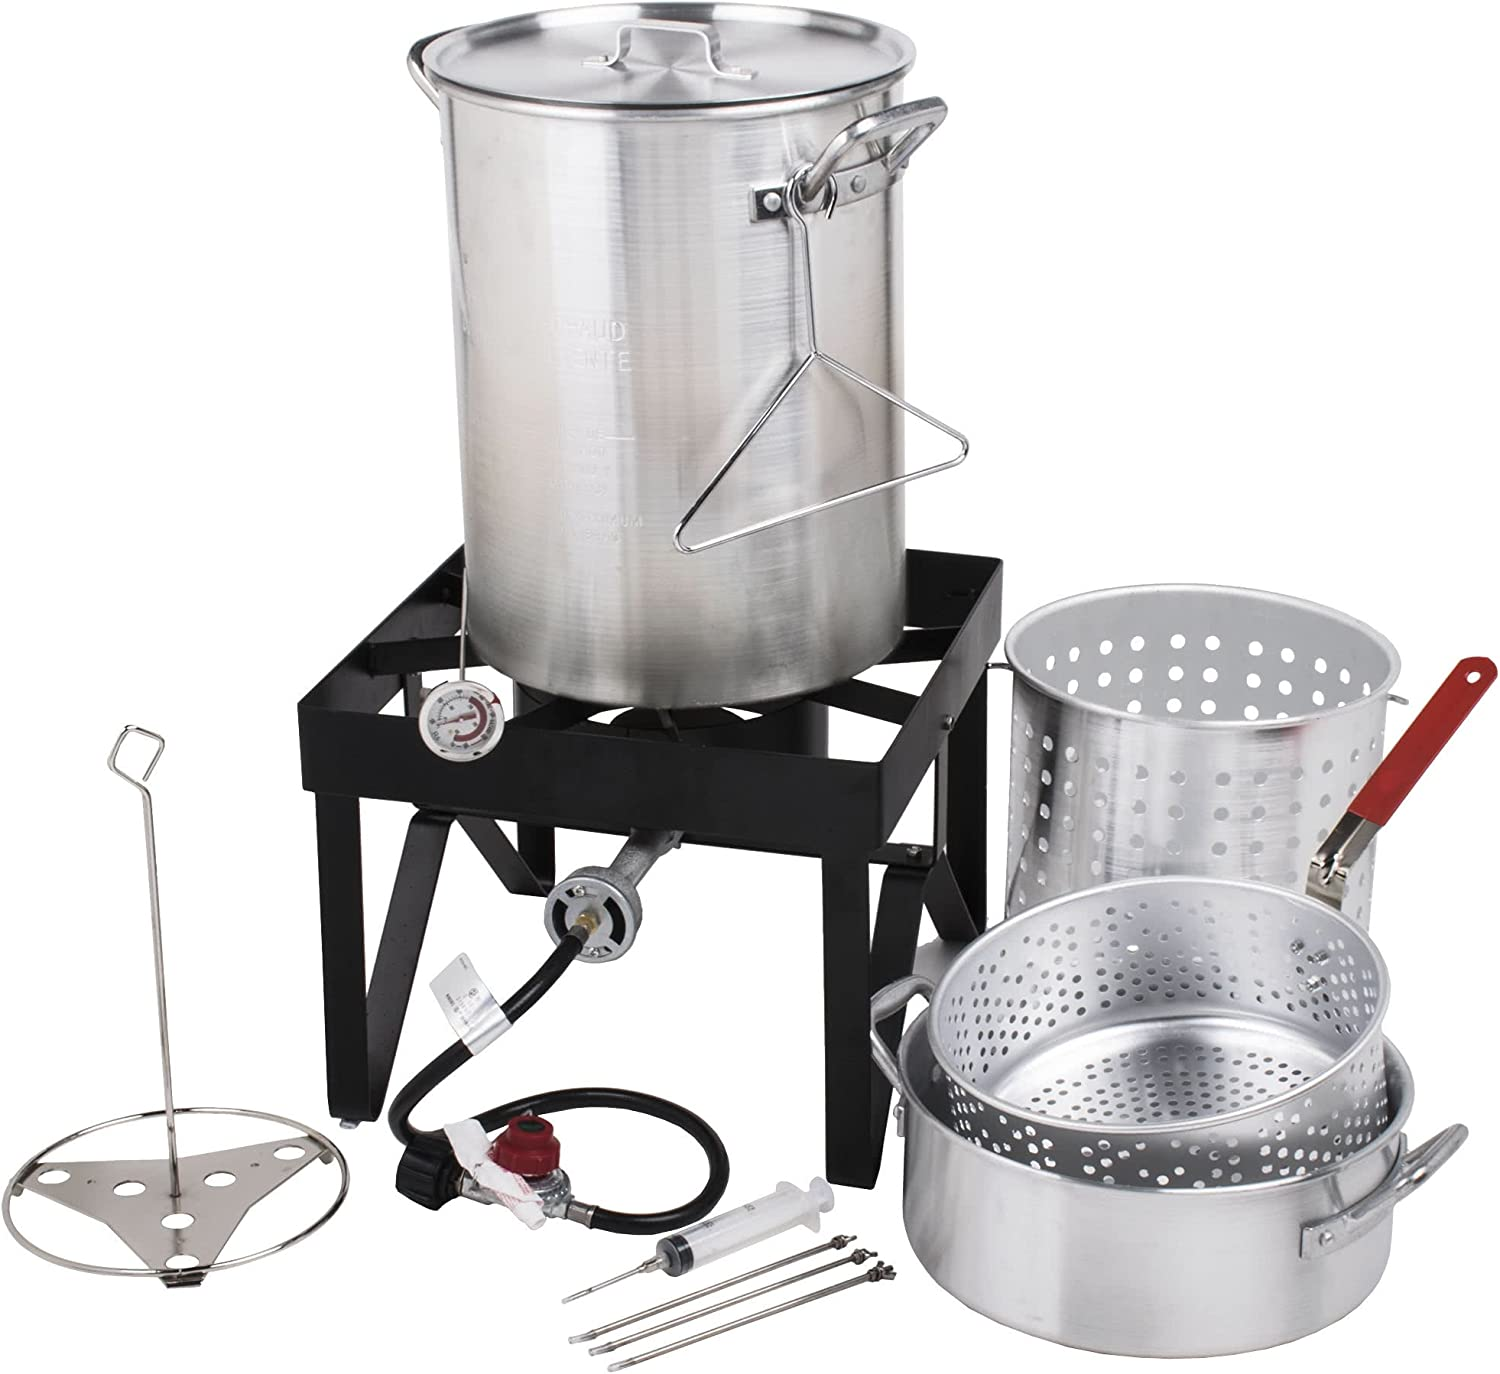 Cooper & Co Backyard Pro Deluxe 30 qt Aluminum Turkey Fryer